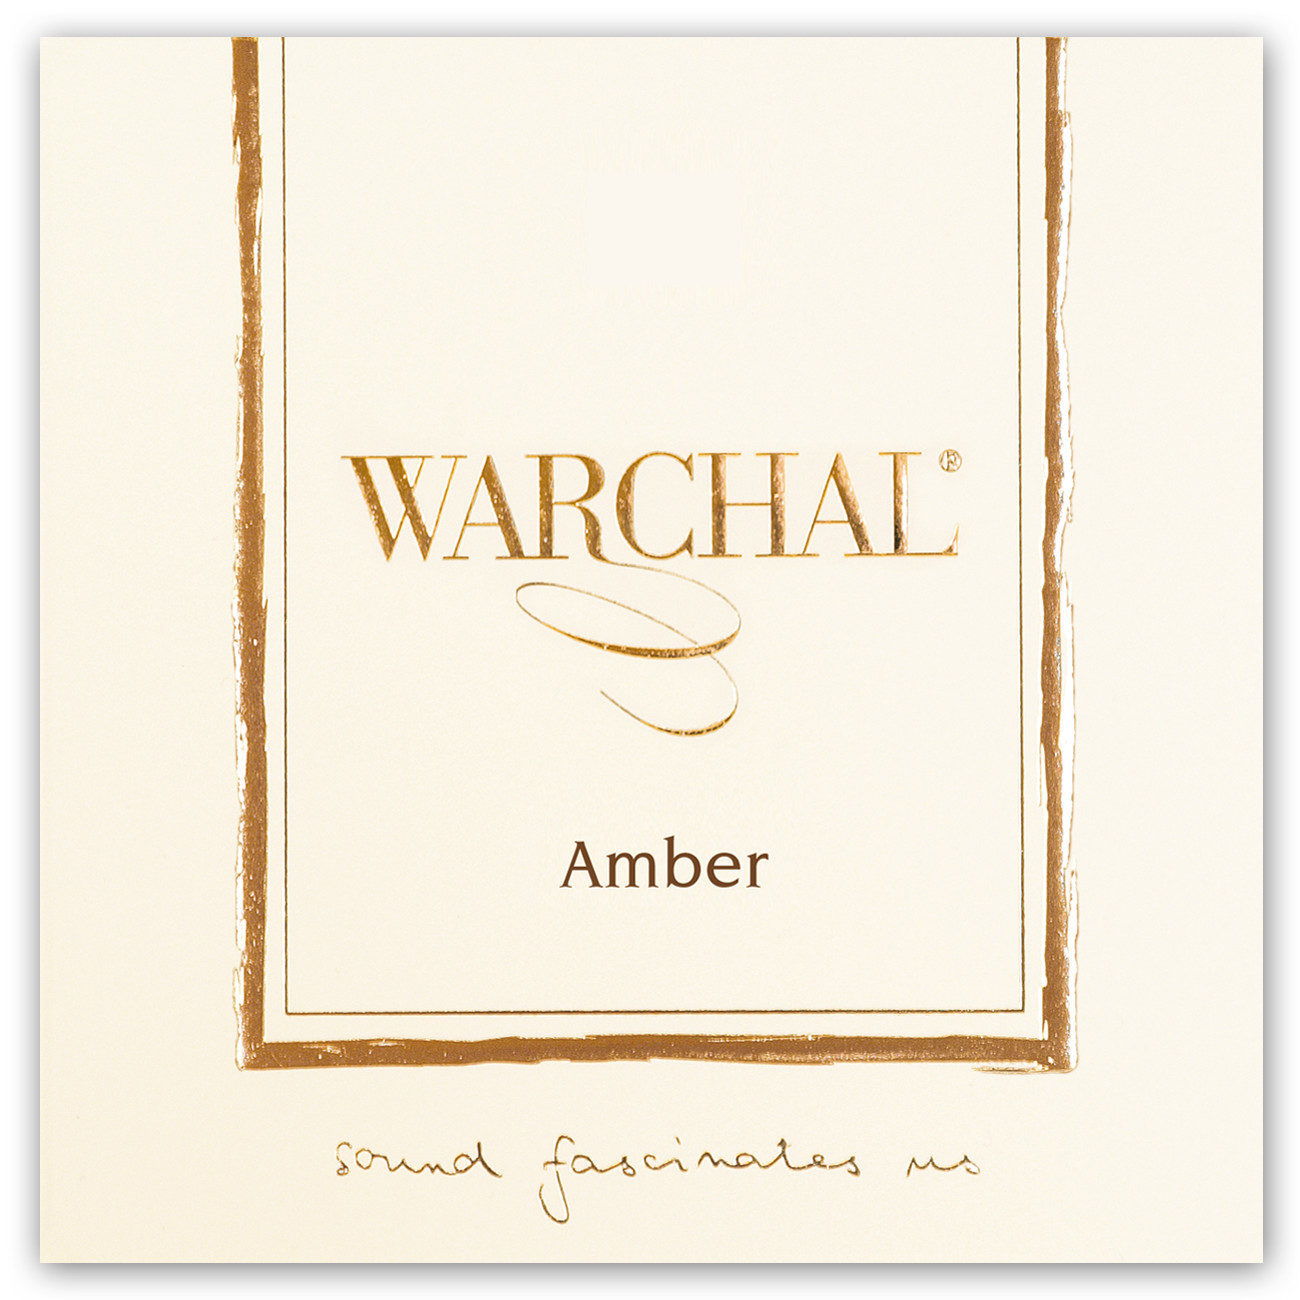 Warchal Amber Cello